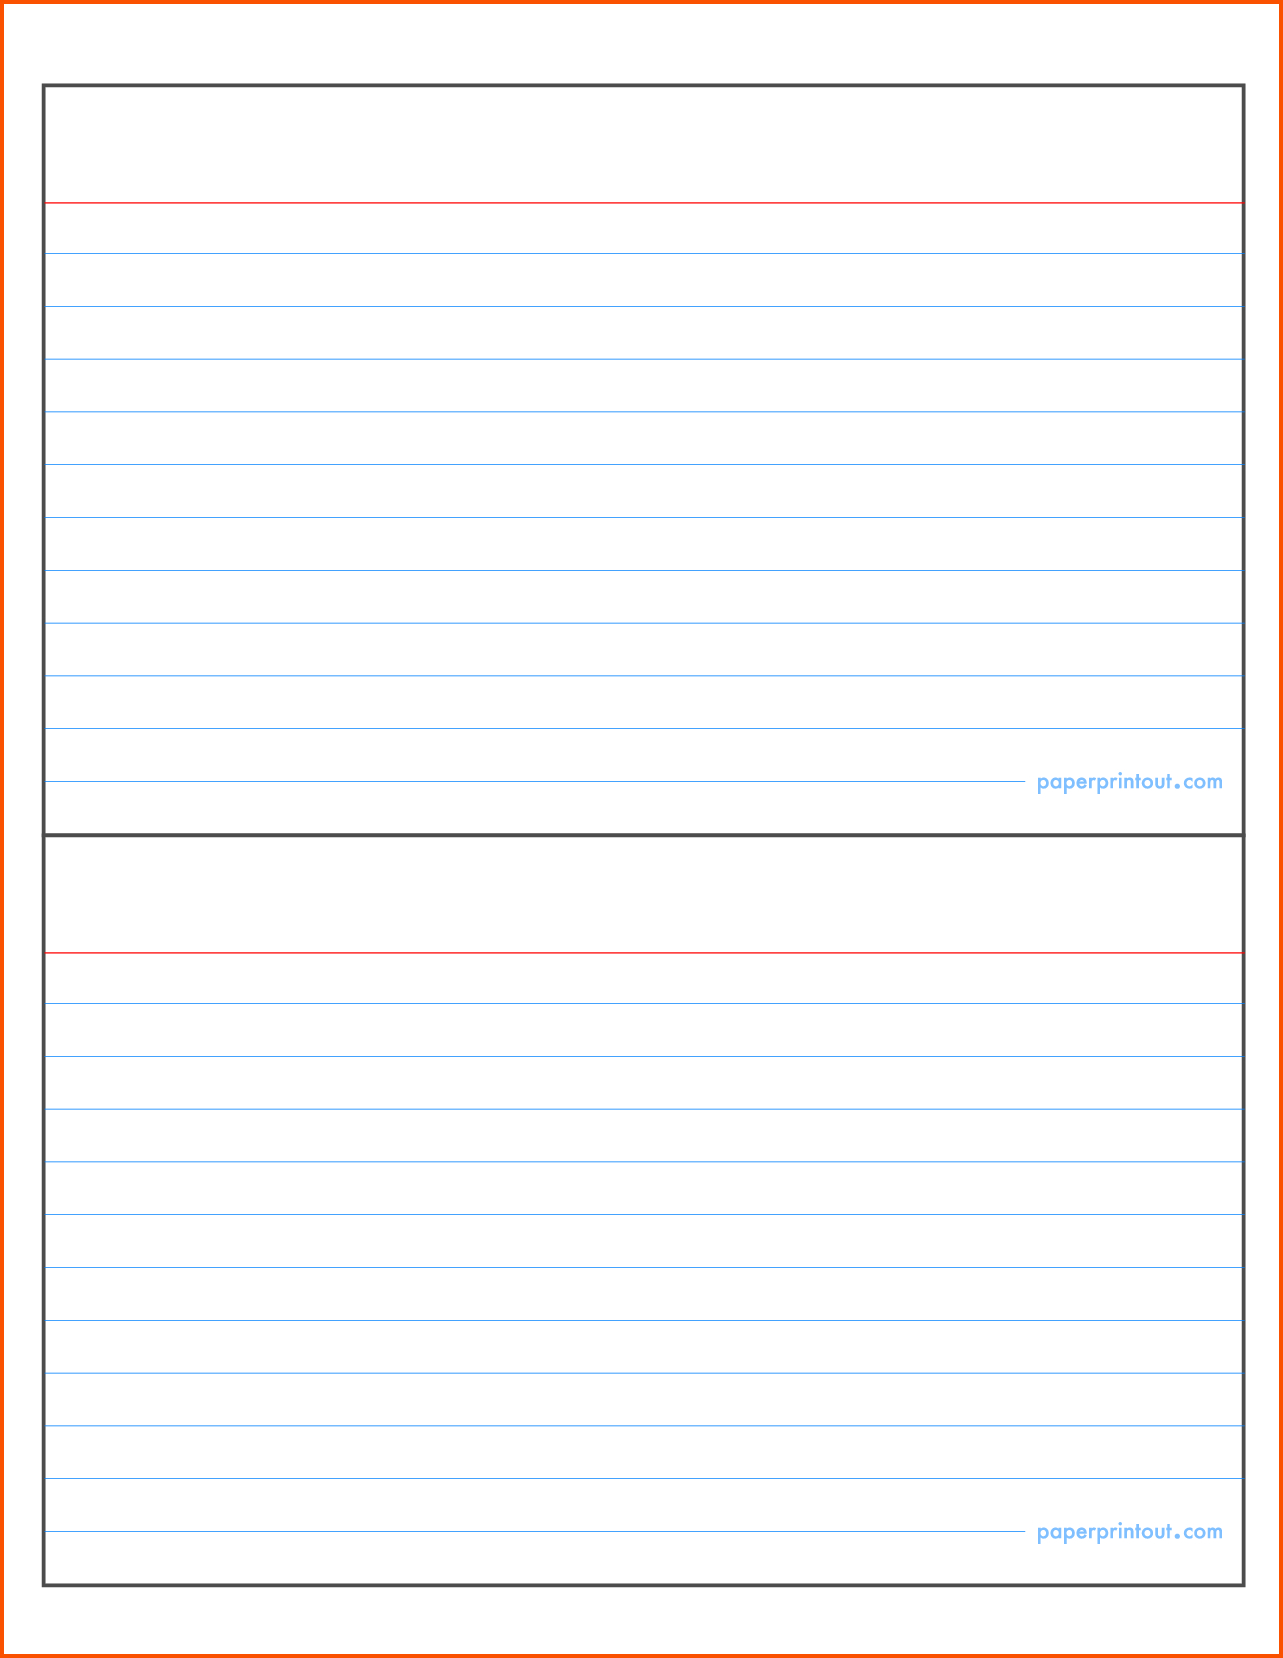 002 Template Ideas Note Card Word Index Cards 127998 Inside Word Template For 3X5 Index Cards